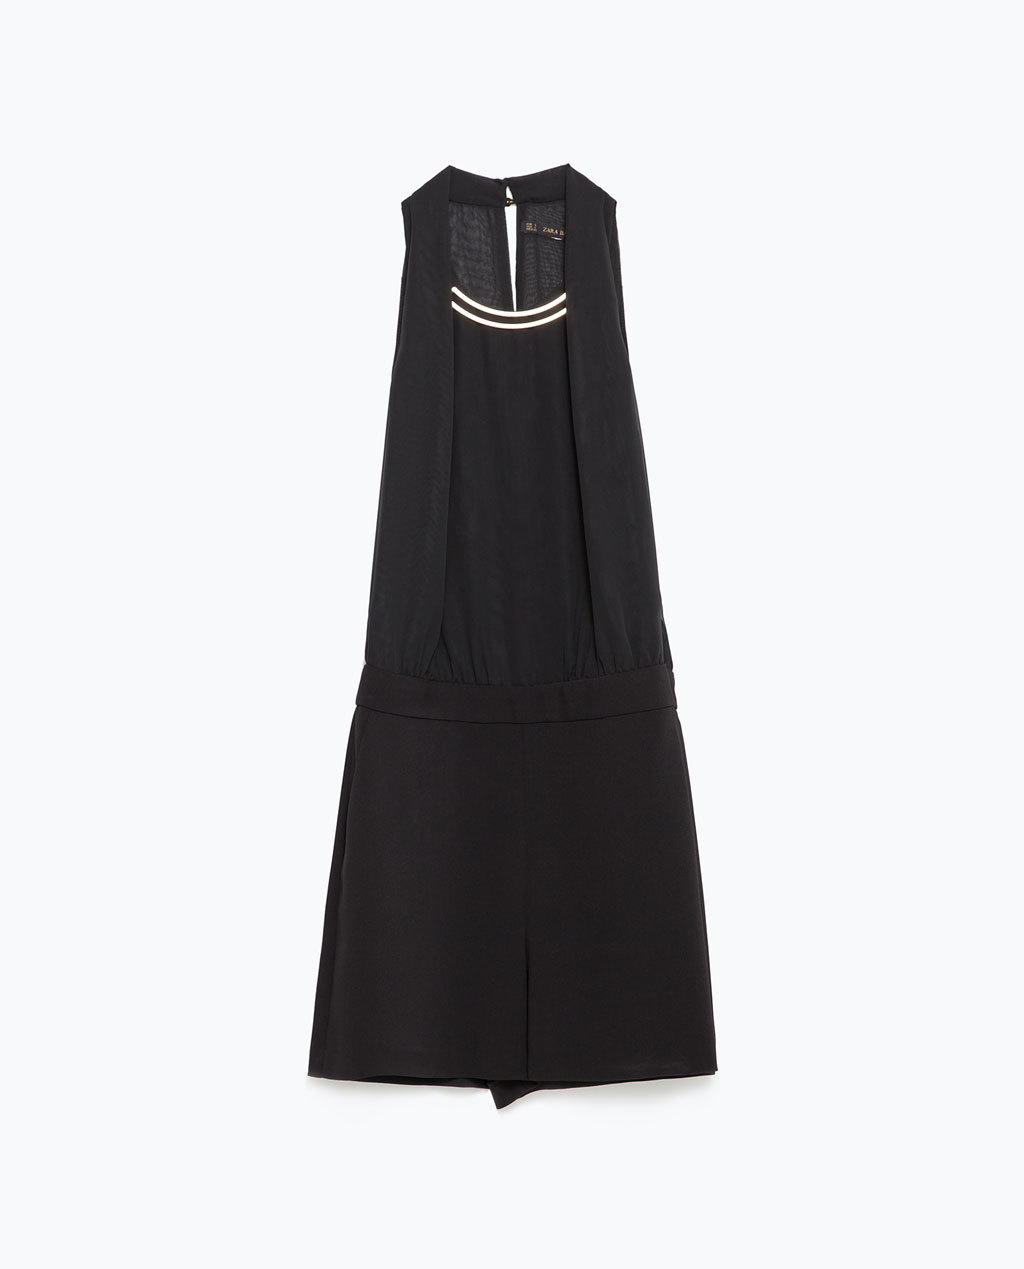 Crepe Jumpsuit - neckline: round neck; pattern: plain; sleeve style: sleeveless; length: short shorts; predominant colour: black; occasions: evening; fit: body skimming; sleeve length: sleeveless; texture group: crepes; style: playsuit; pattern type: fabric; season: a/w 2015